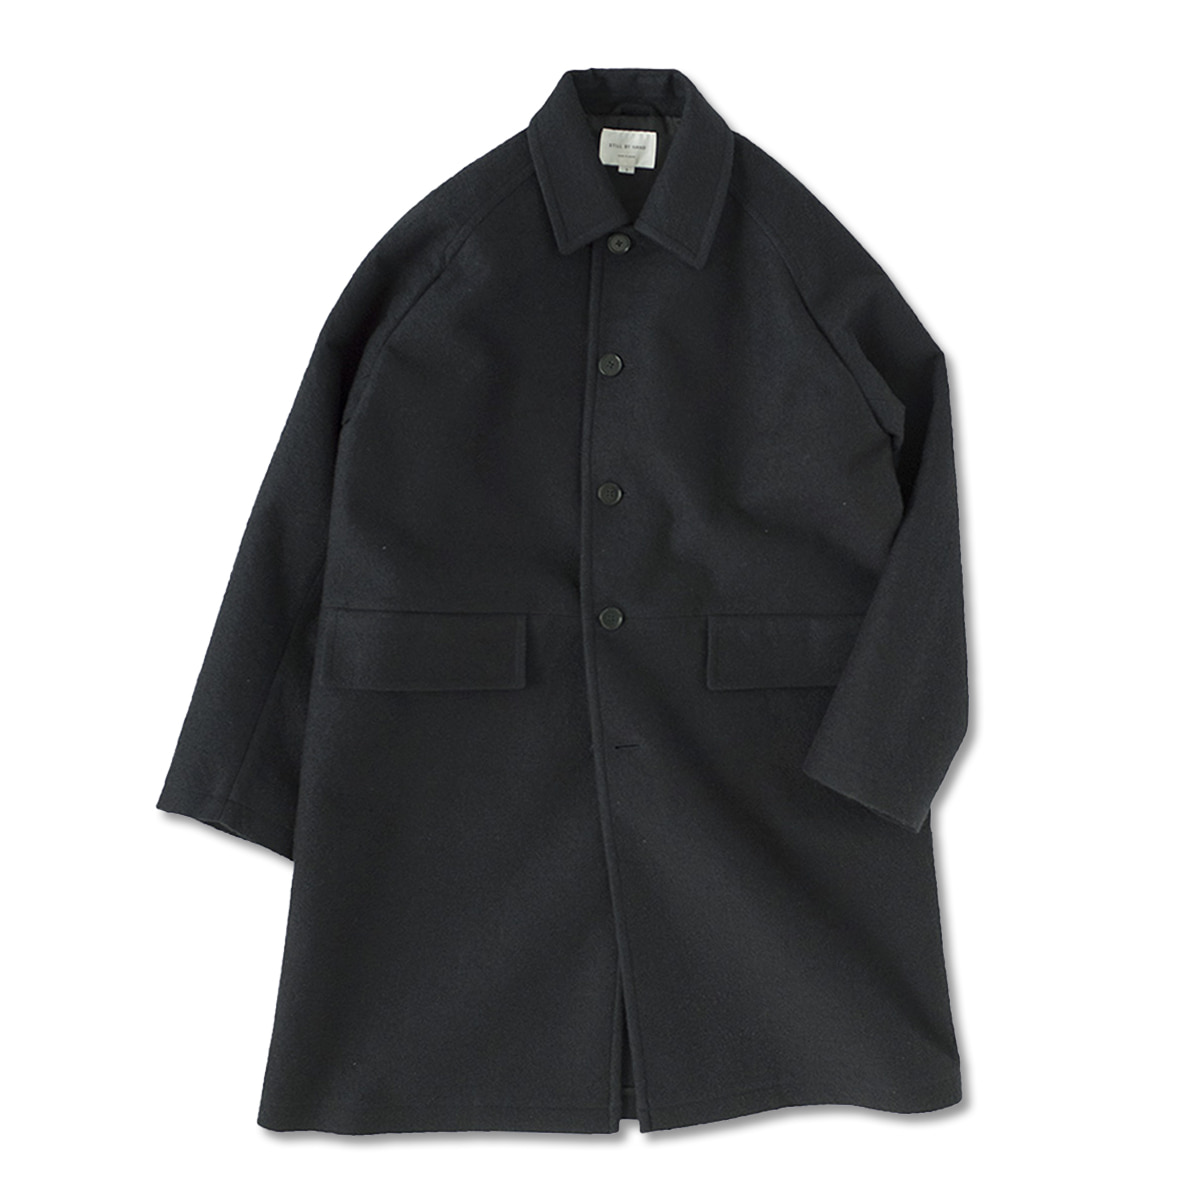 [STILL BY HAND] CO0583 - BONDED BAL COLLAR COAT 'CHARCOAL'